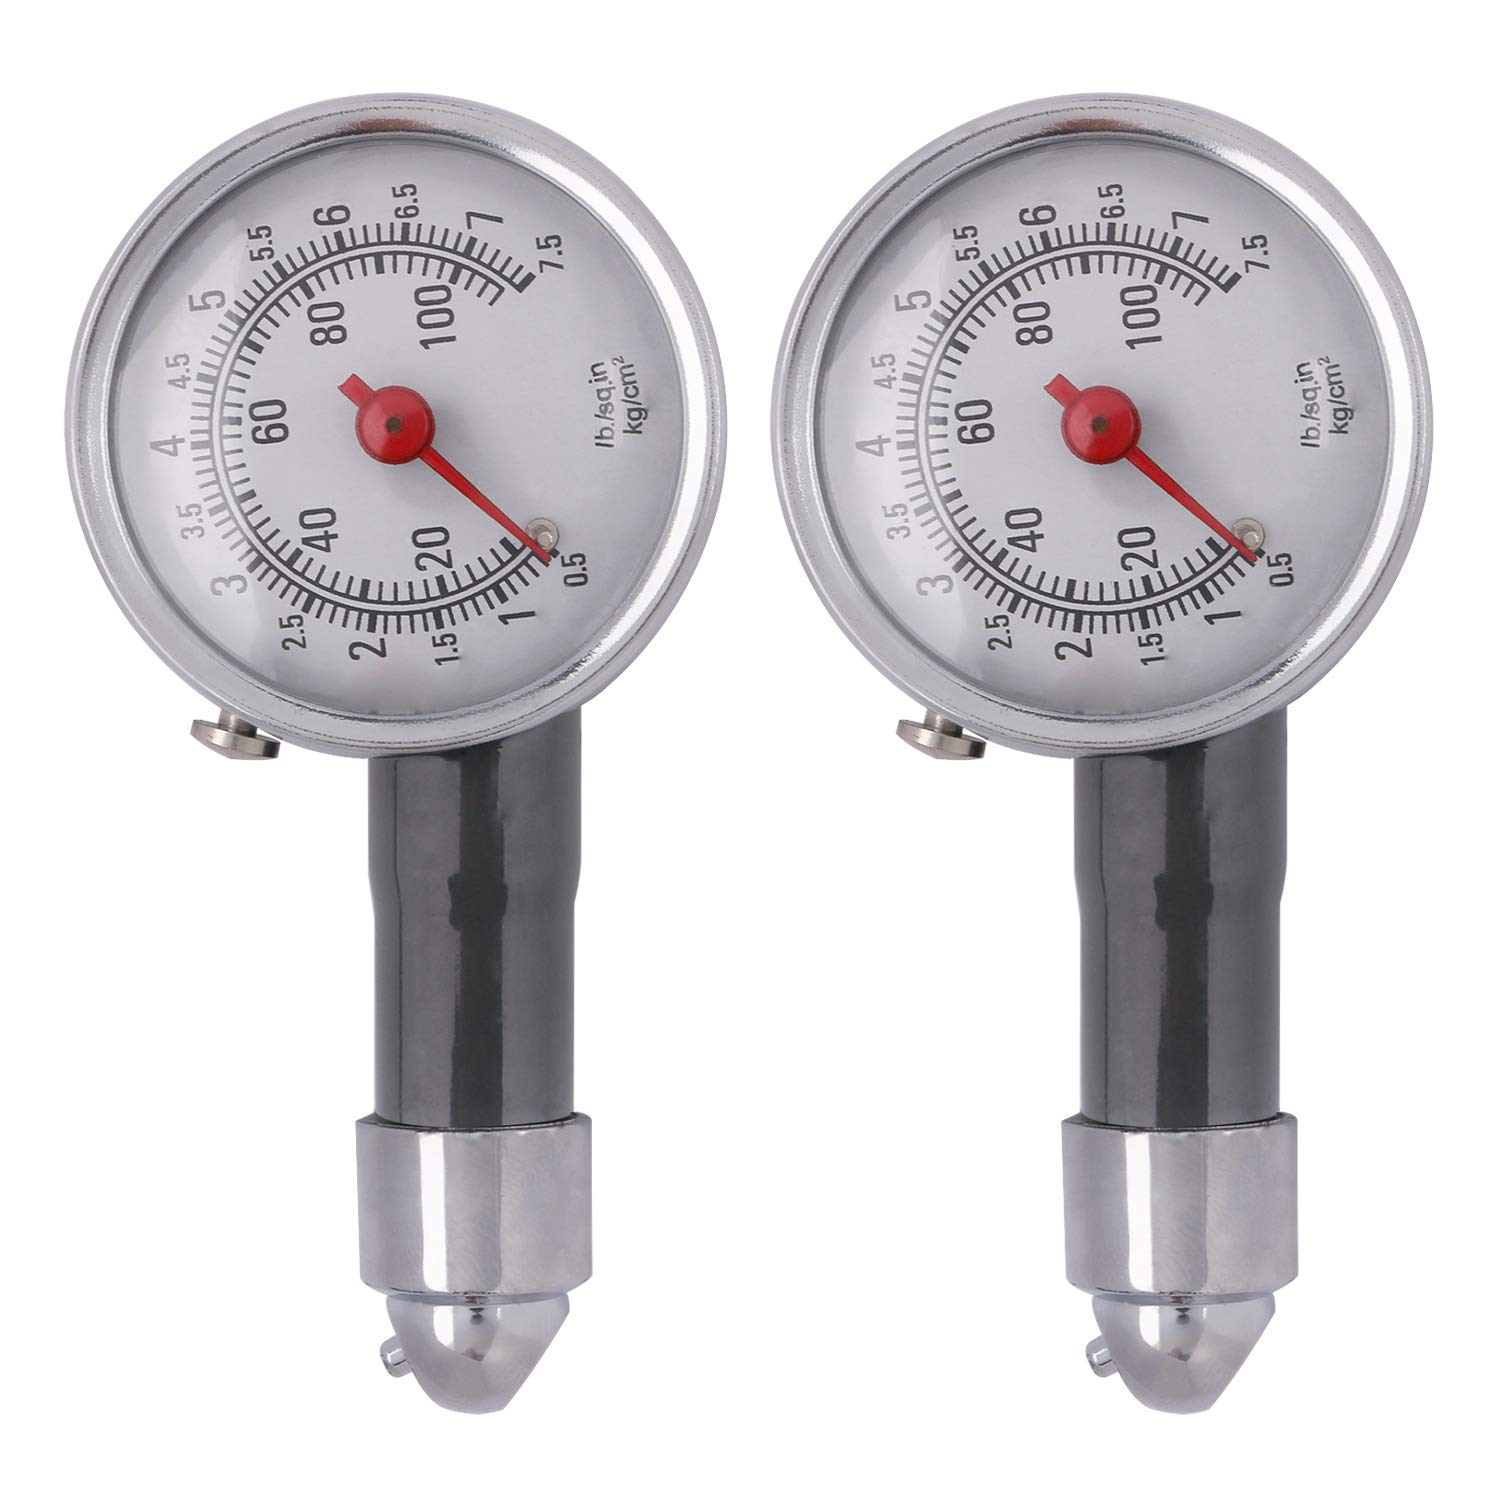 Sdootauto Tire Pressure Gauge, 2 Pack Heavy Duty Tire Inflator Gauge Accurate for Any Car, Truck, Motorcycle, RV- 100 PSI